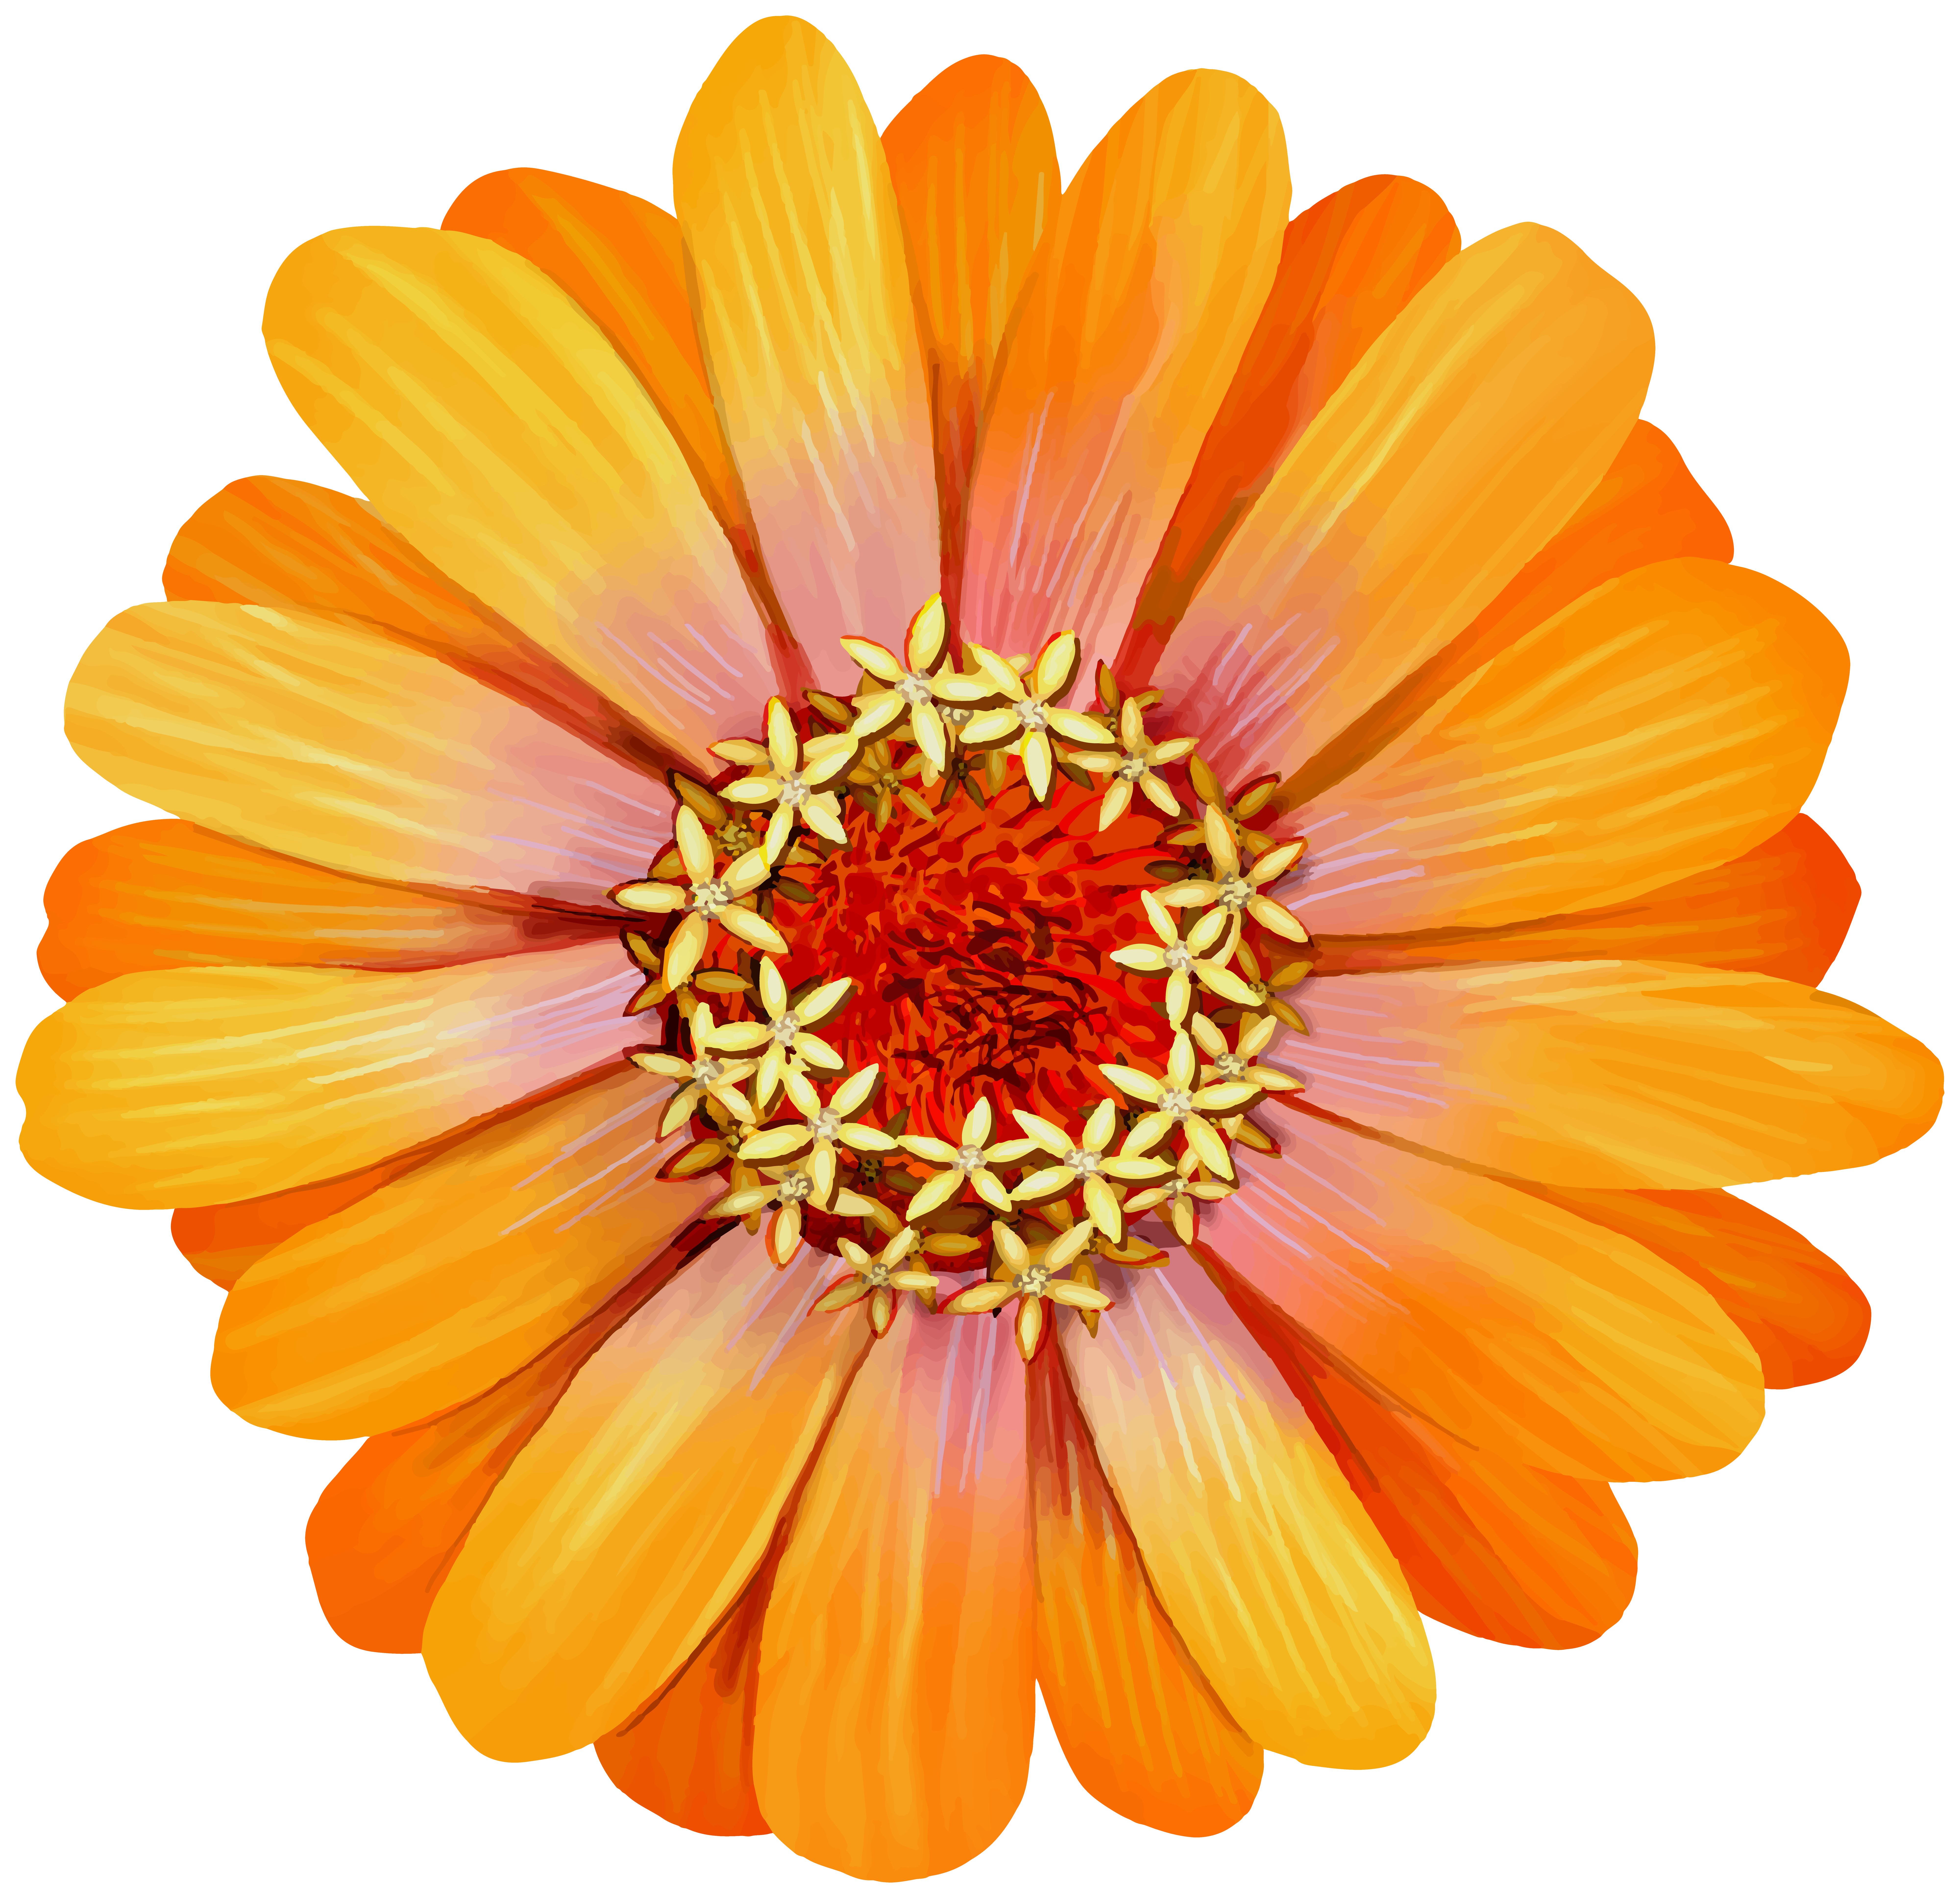 Orange Zinnia Flower Transparent Image.